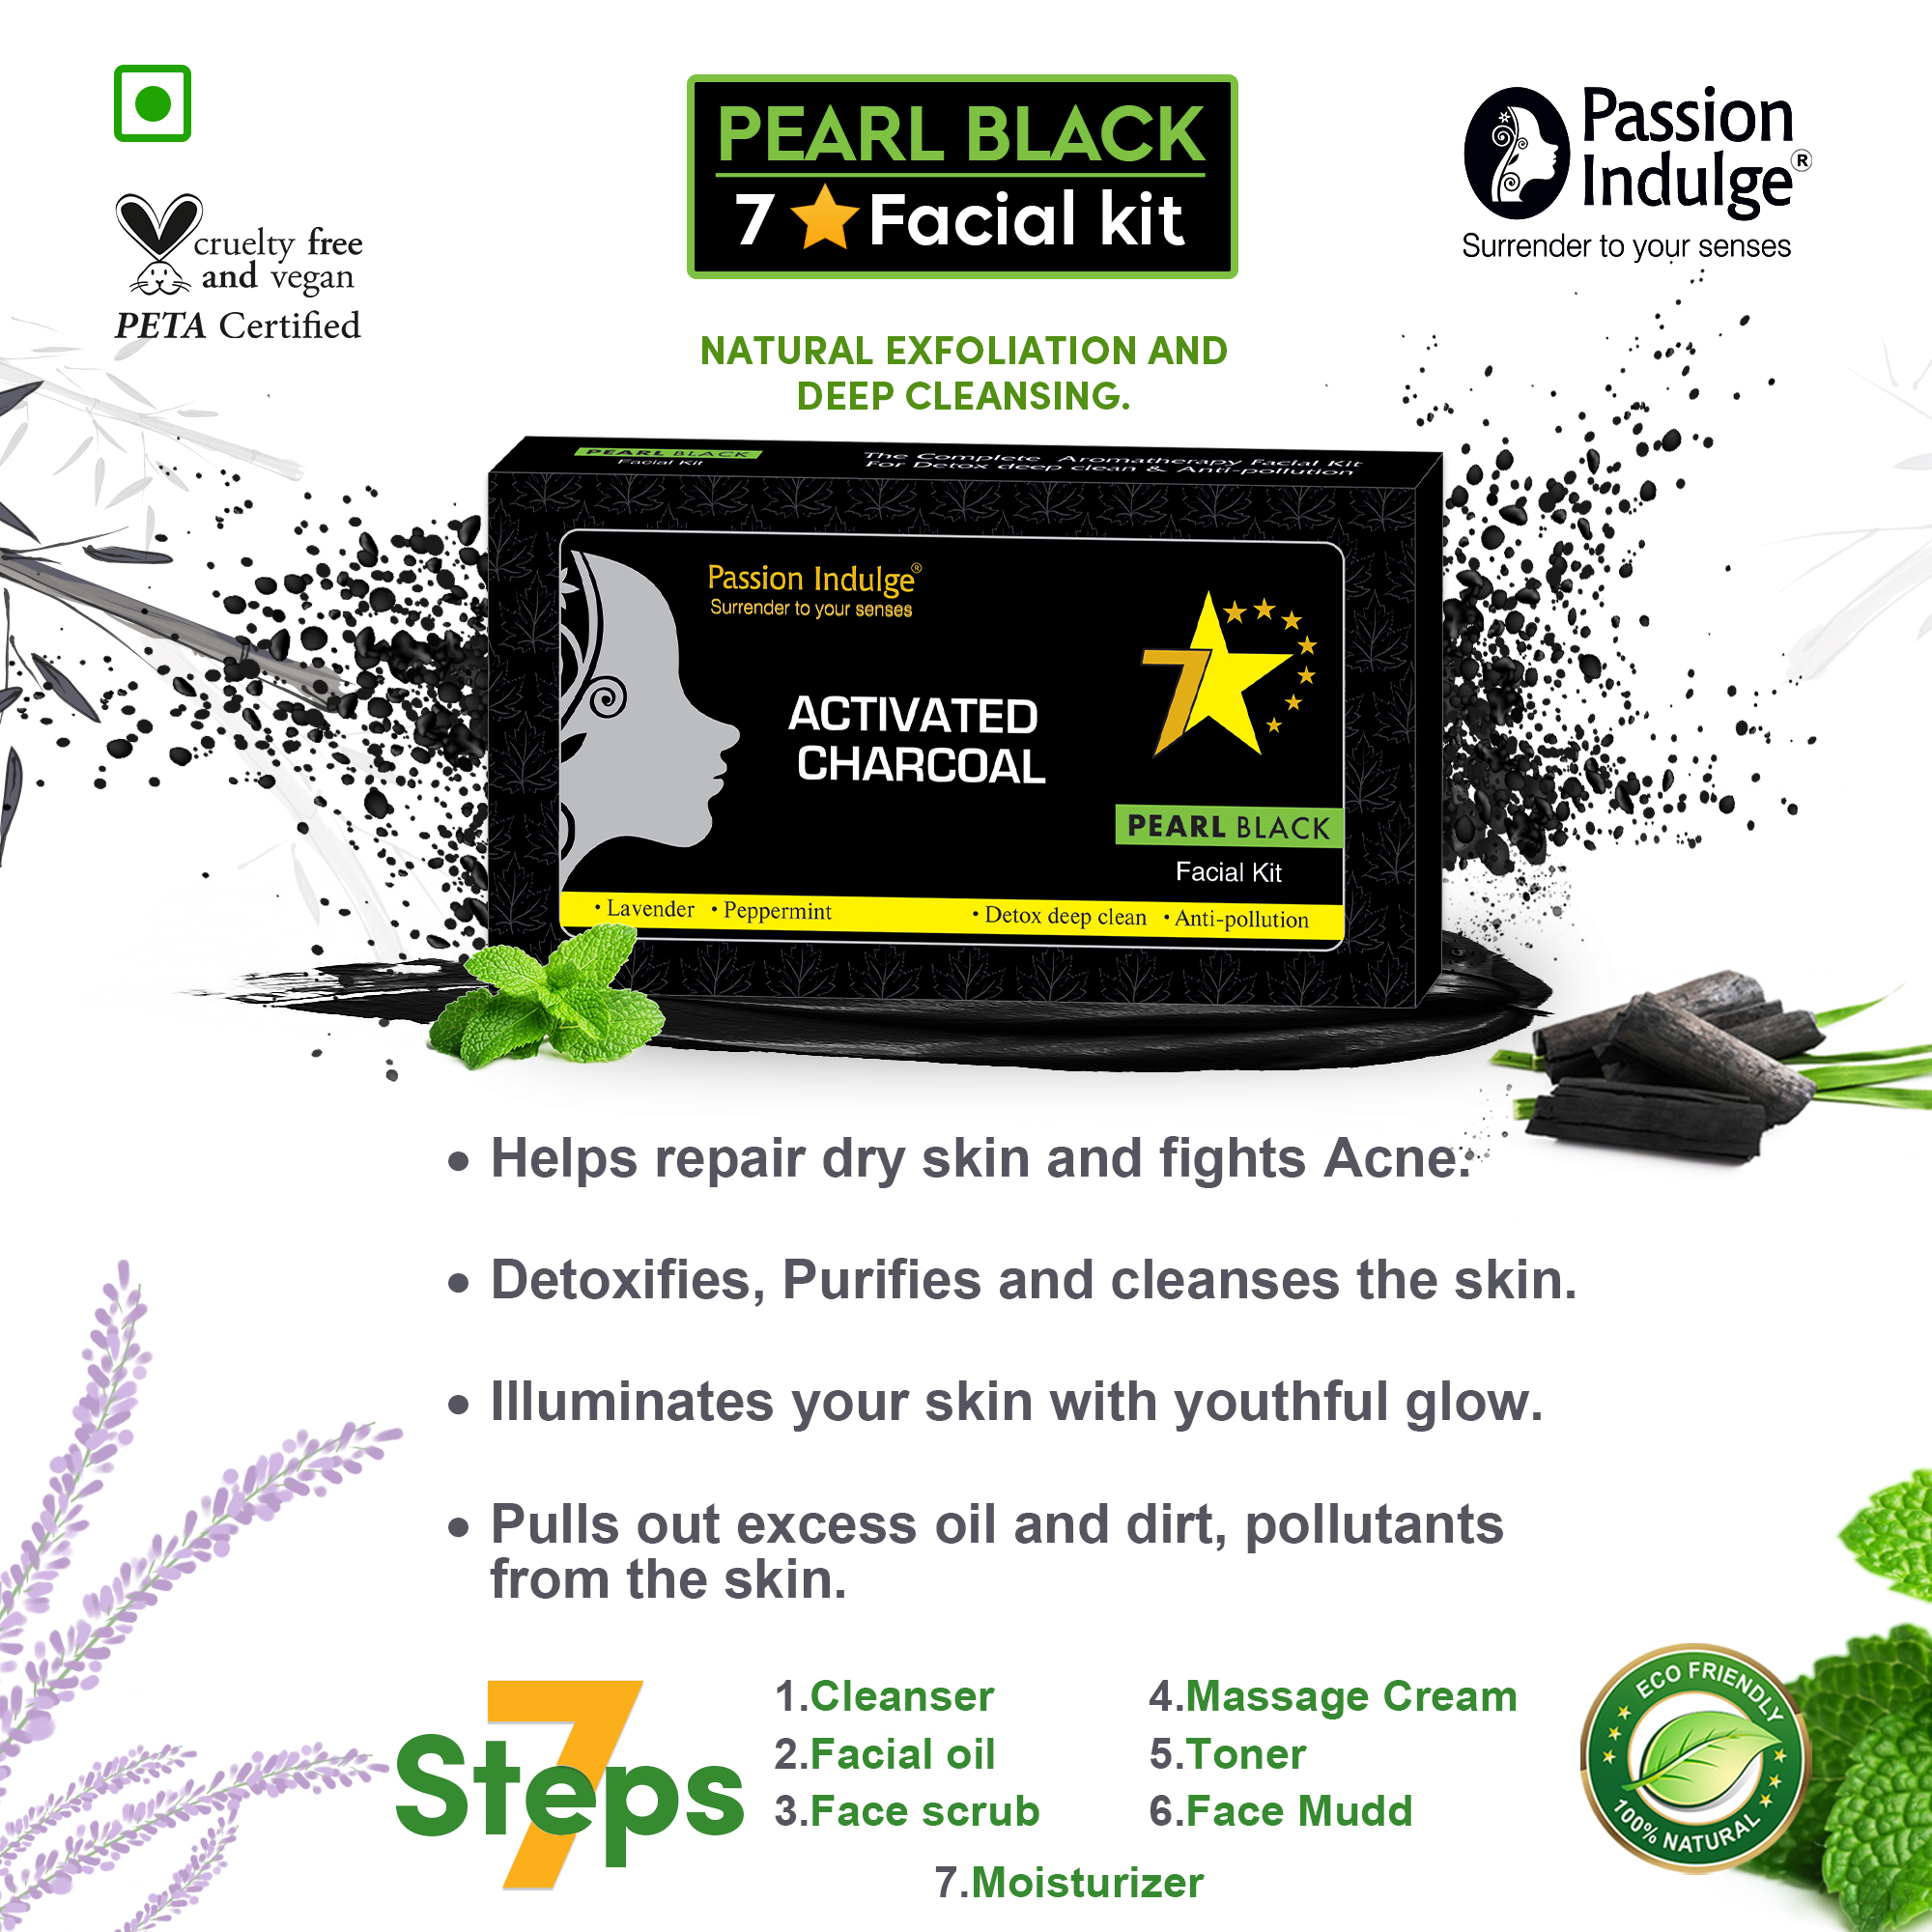 Activated Charcoal Pearl Black 7 Star Facial Kit  - Passion Indulge